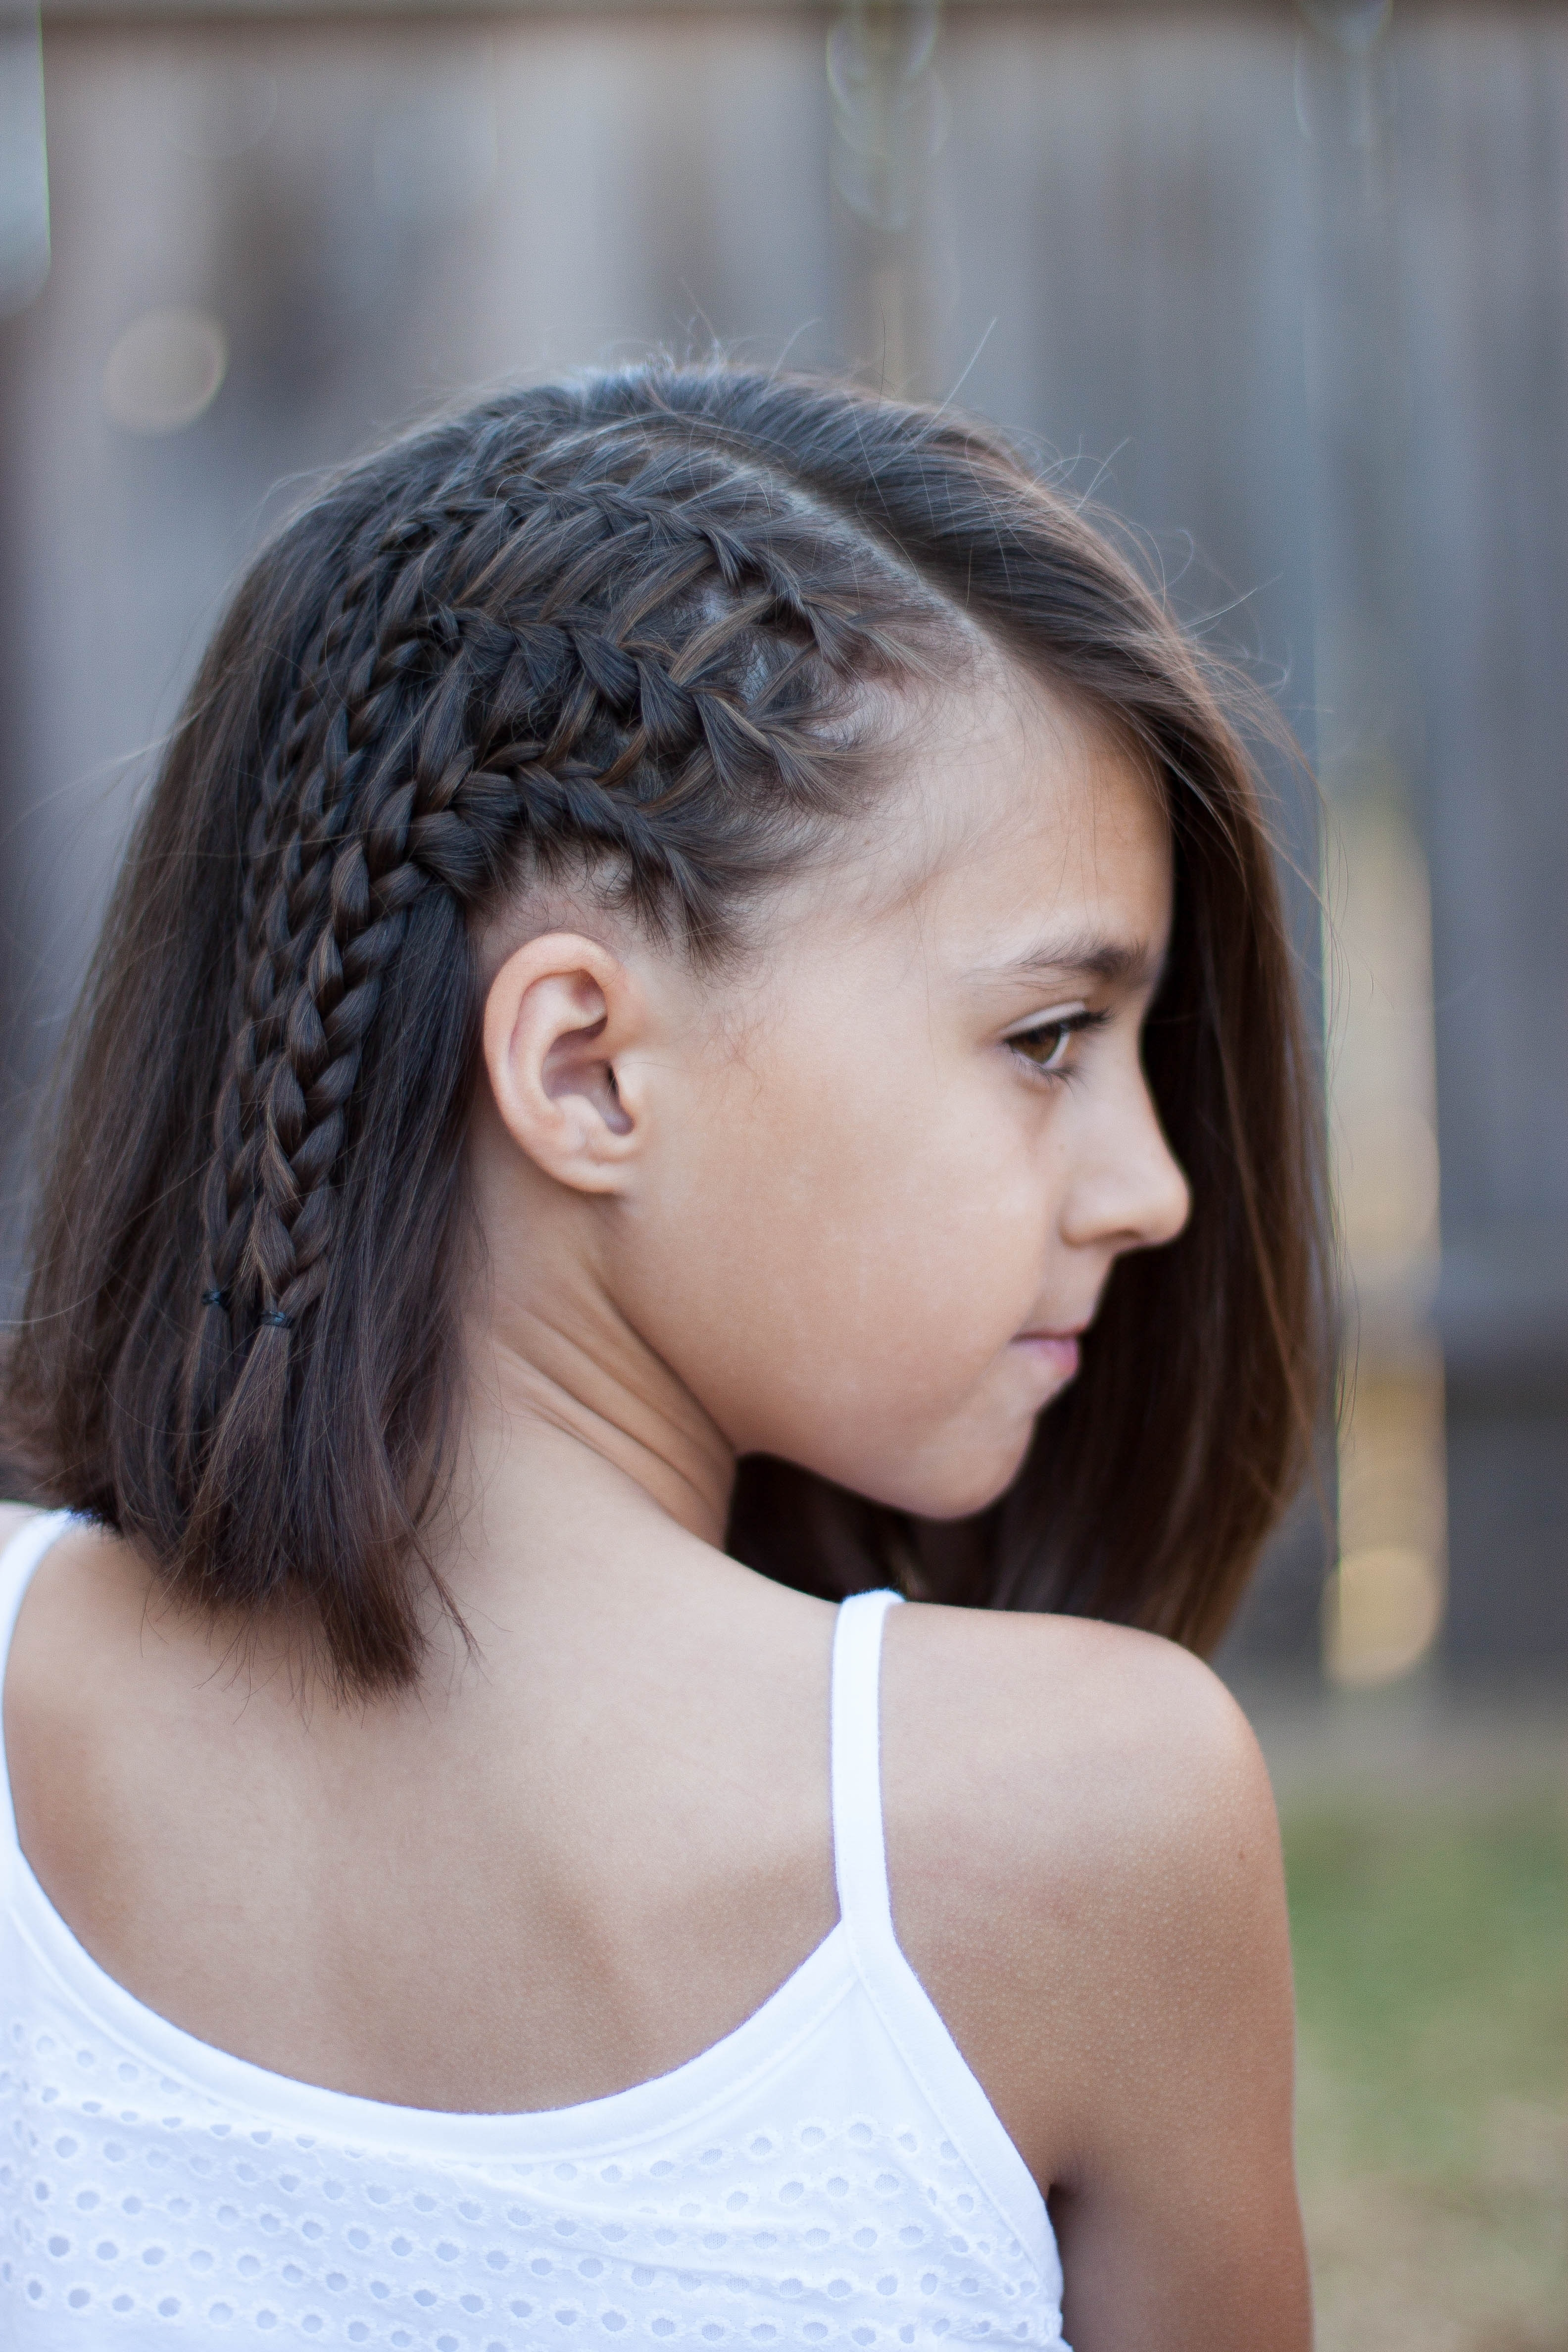 Most Popular Braided Hairstyles For Short Hair With Regard To 5 Braids For Short Hair (View 8 of 15)